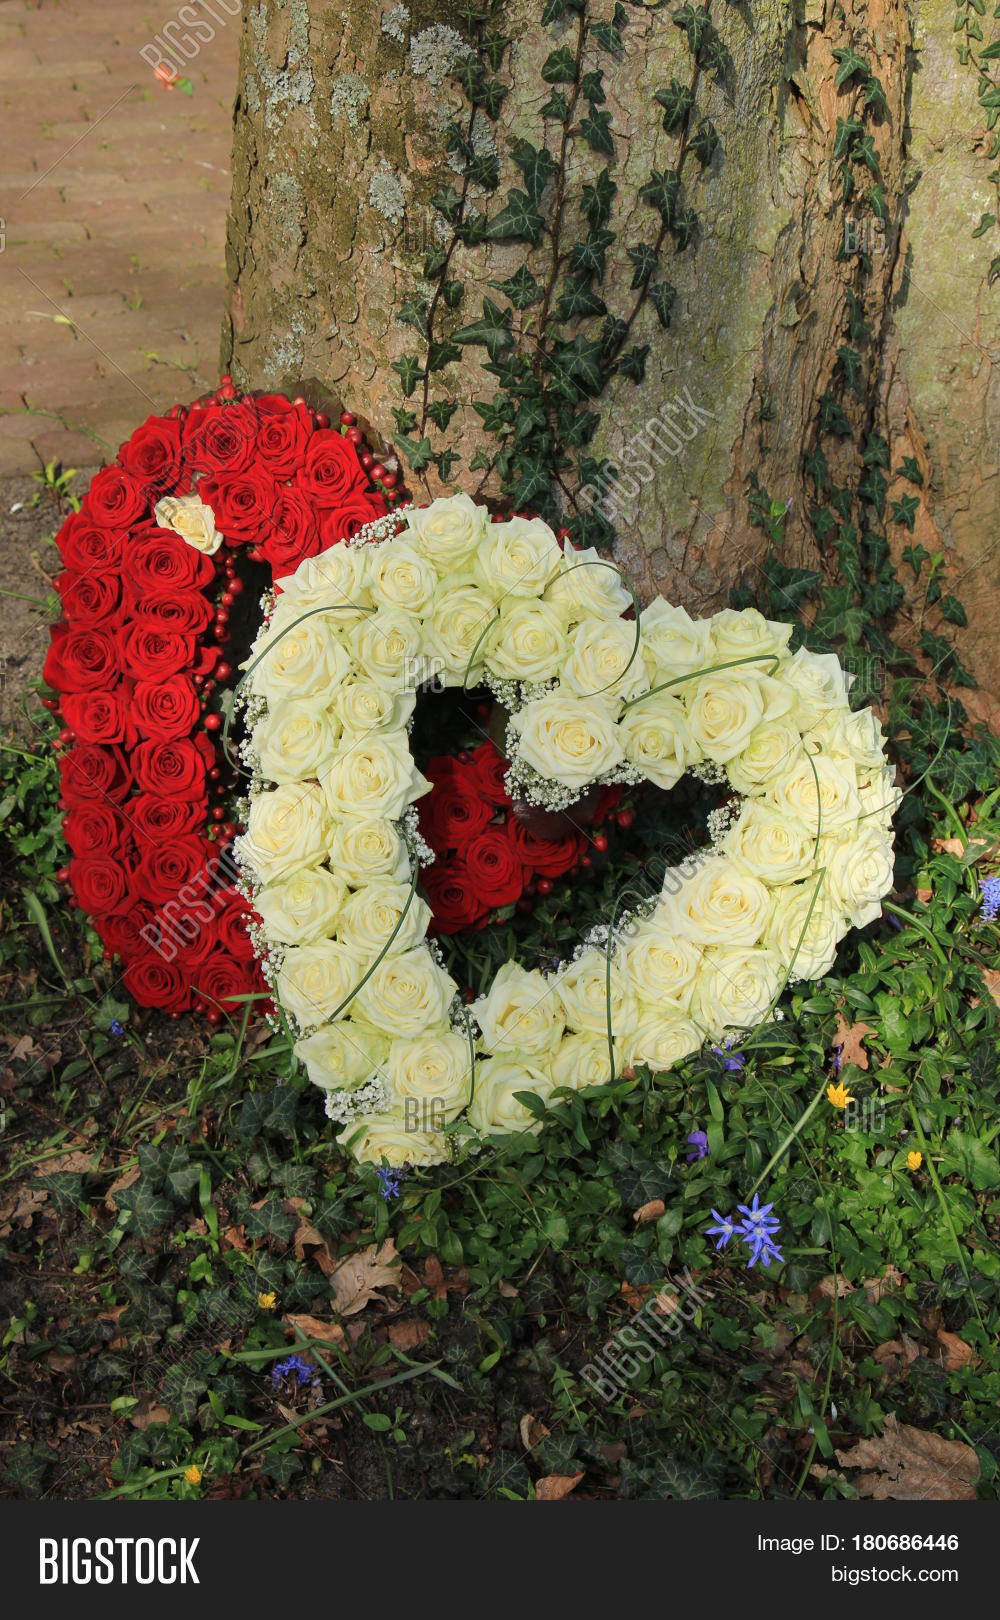 Heartshaped sympathy image photo free trial bigstock heartshaped sympathy flowers or funeral flowers near a tree izmirmasajfo